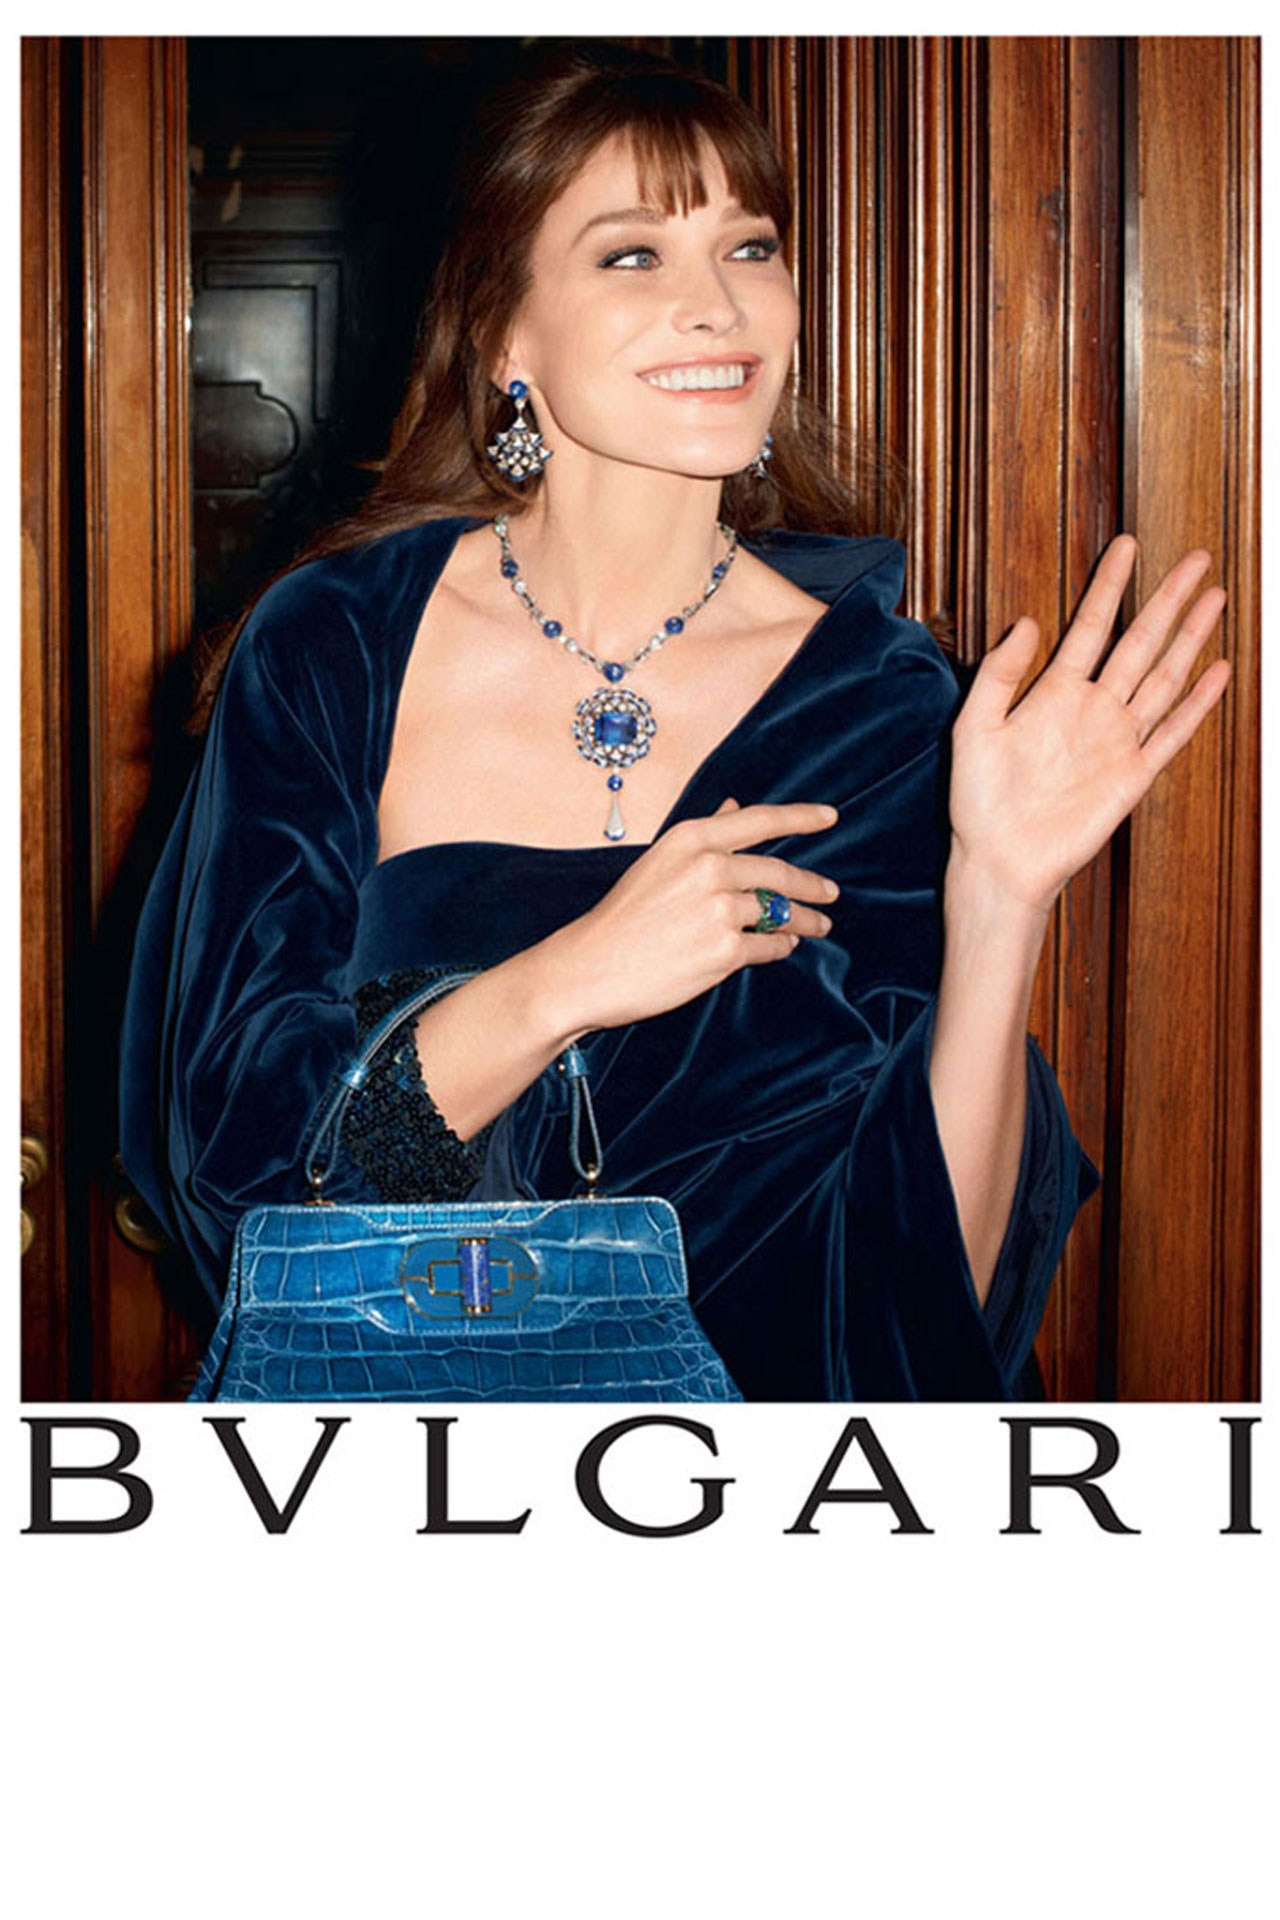 bulgari-carla-bruni-vogue-6-16jul13-pr_b